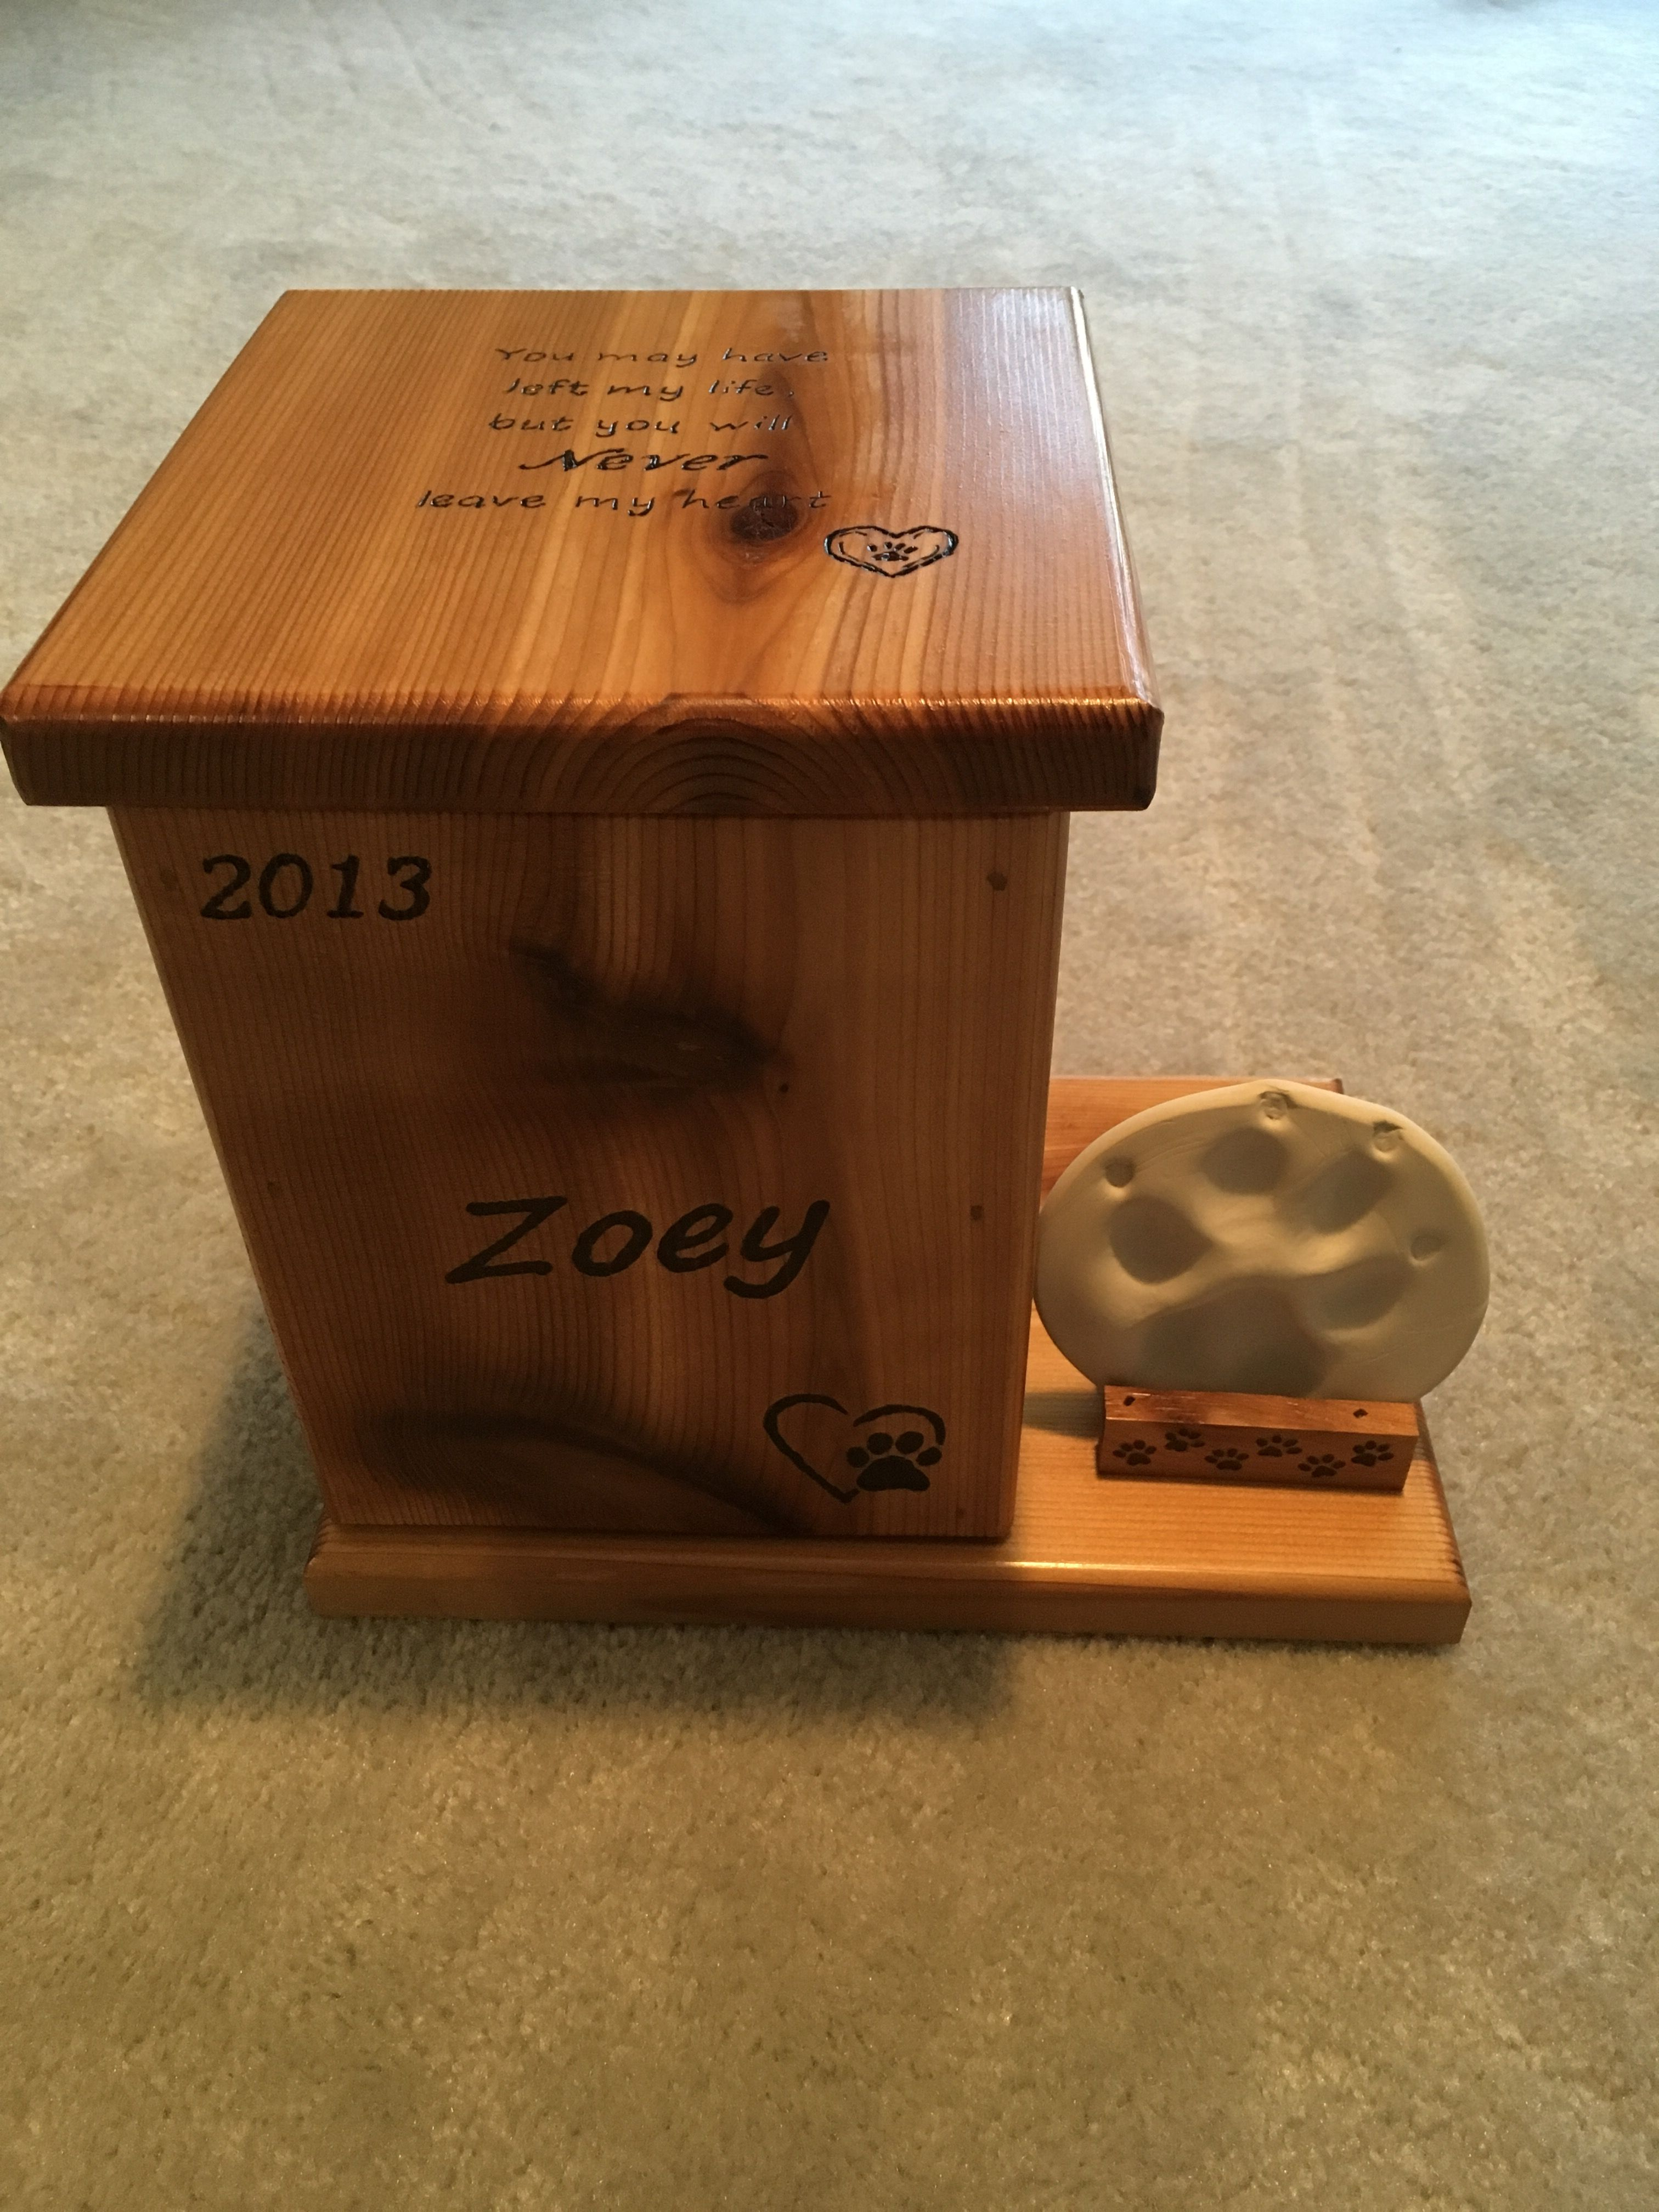 Wooden cremation pet urn cremation box diy wood burning with wooden cremation pet urn cremation box diy wood burning with quote and on top solutioingenieria Image collections